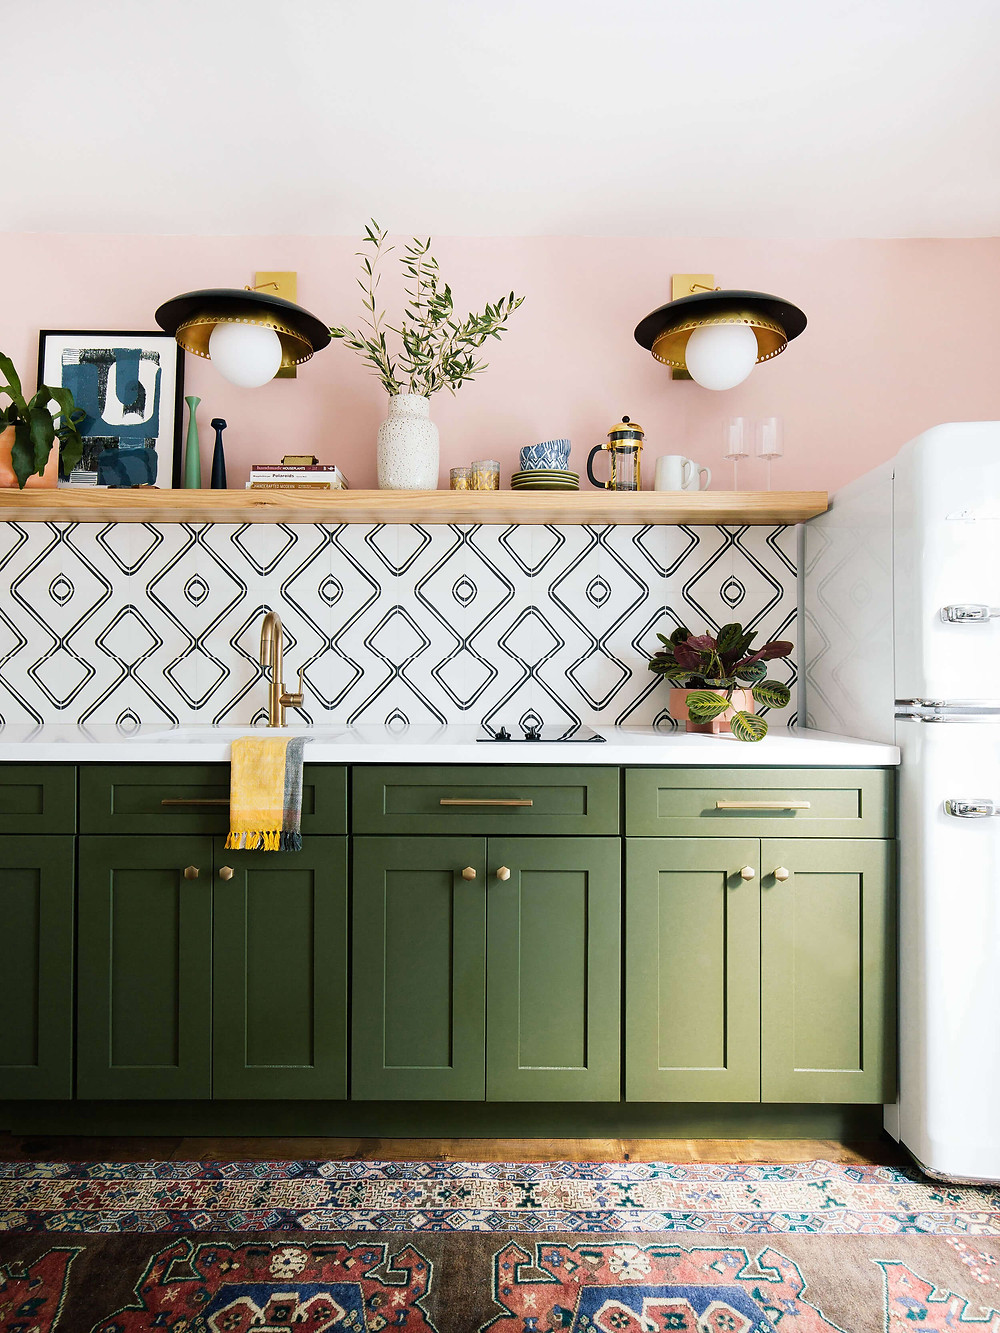 Green cabinets, pink walls, open shelving in guest house kitchen. Funky wall sconces, brass hardware and tap, fun tile back splash. Vintage style refrigerator. Vintage rug.